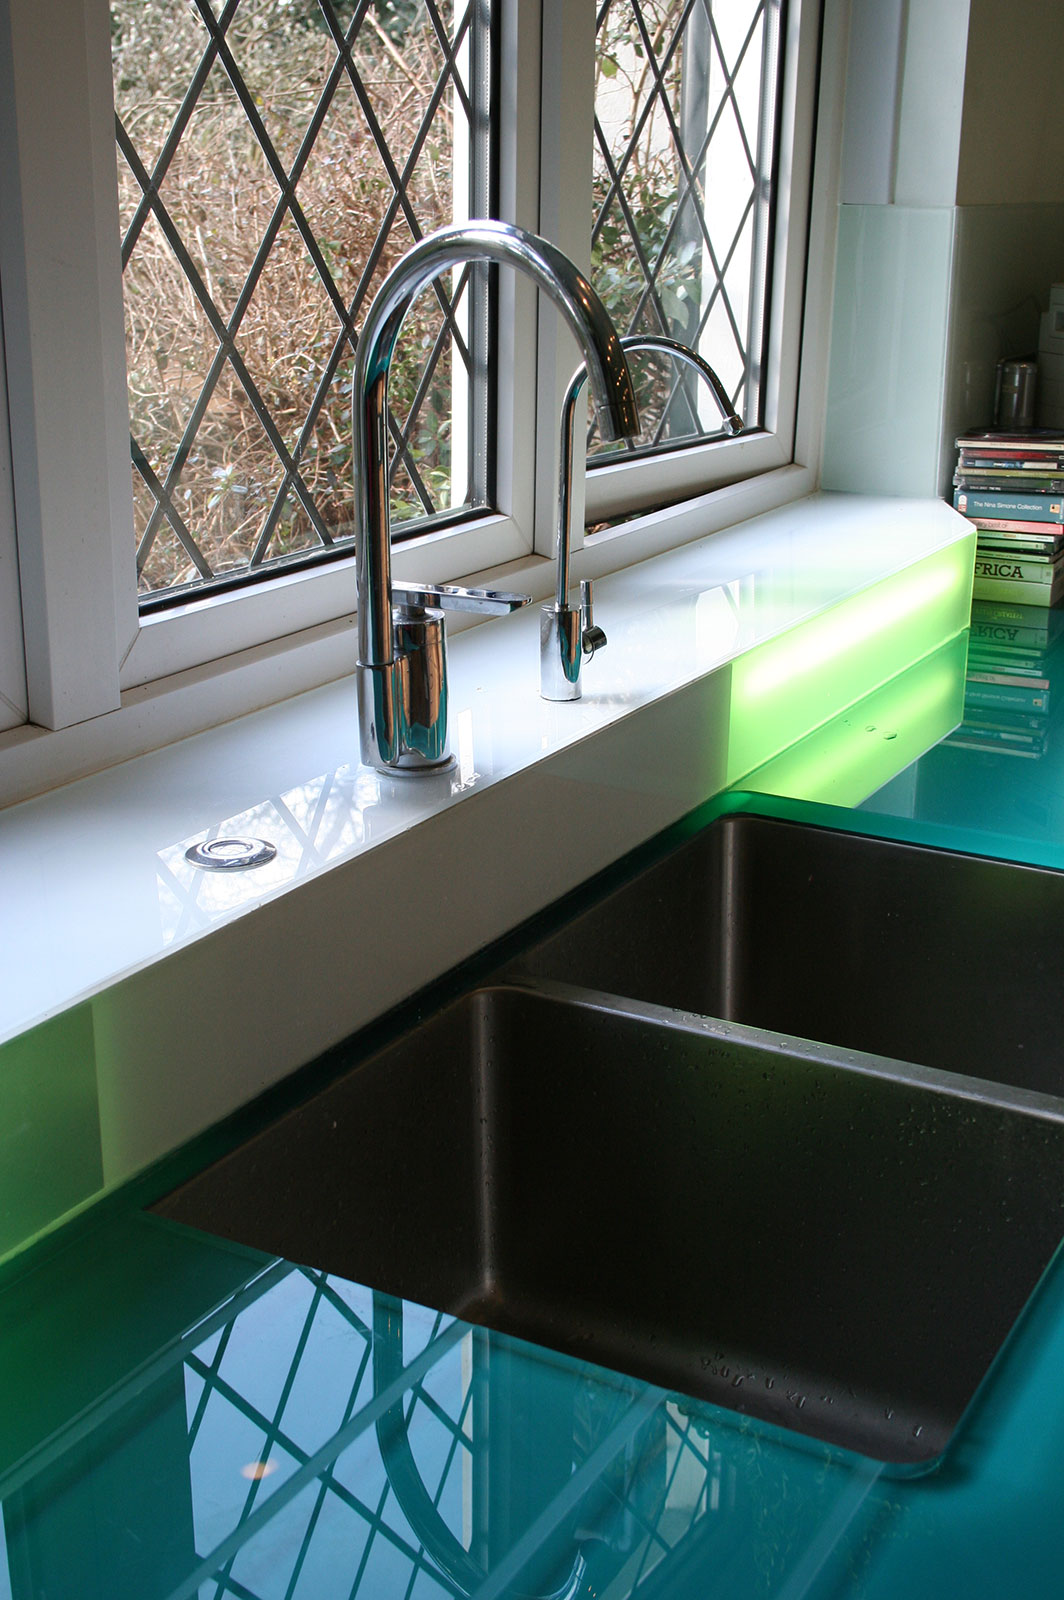 Bespoke Glass Worktop with Glass Drainer Grooves